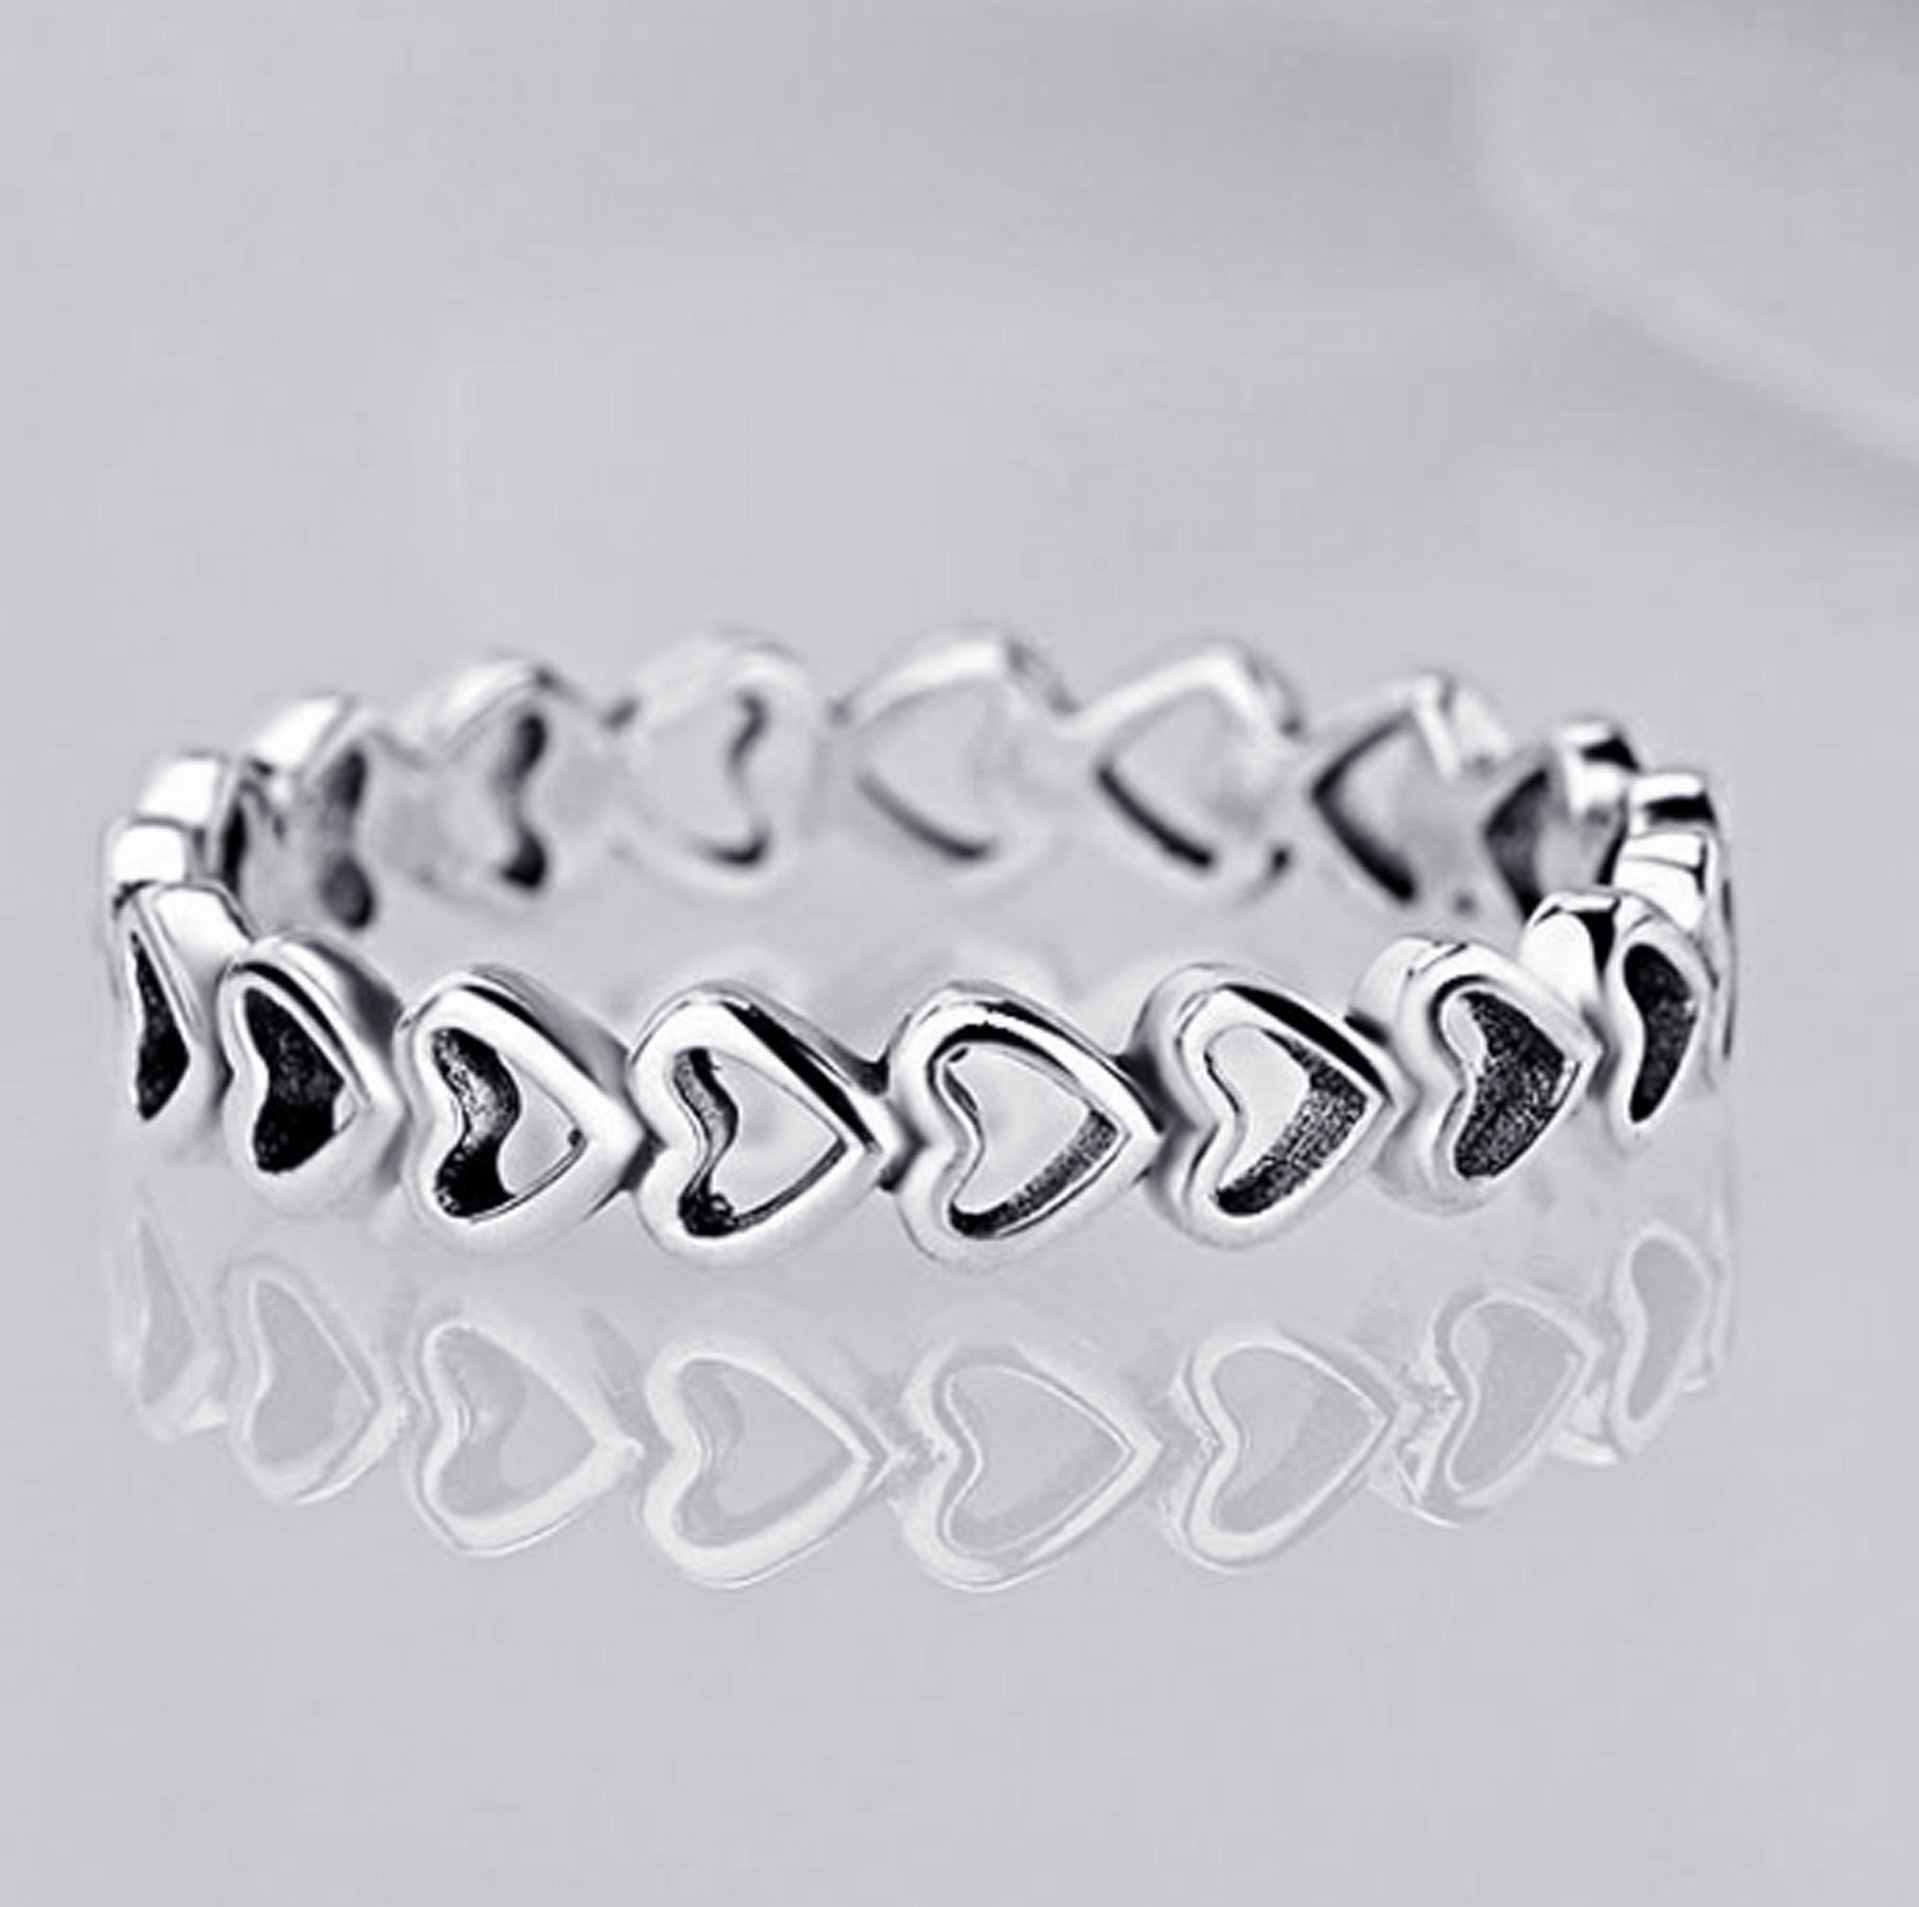 2019 New Fashion Ring Love Heart Crown Flower Finger Rings Clear CZ Stackable Fit Pan For Women Wedding Jewelry Gift Dropship 2